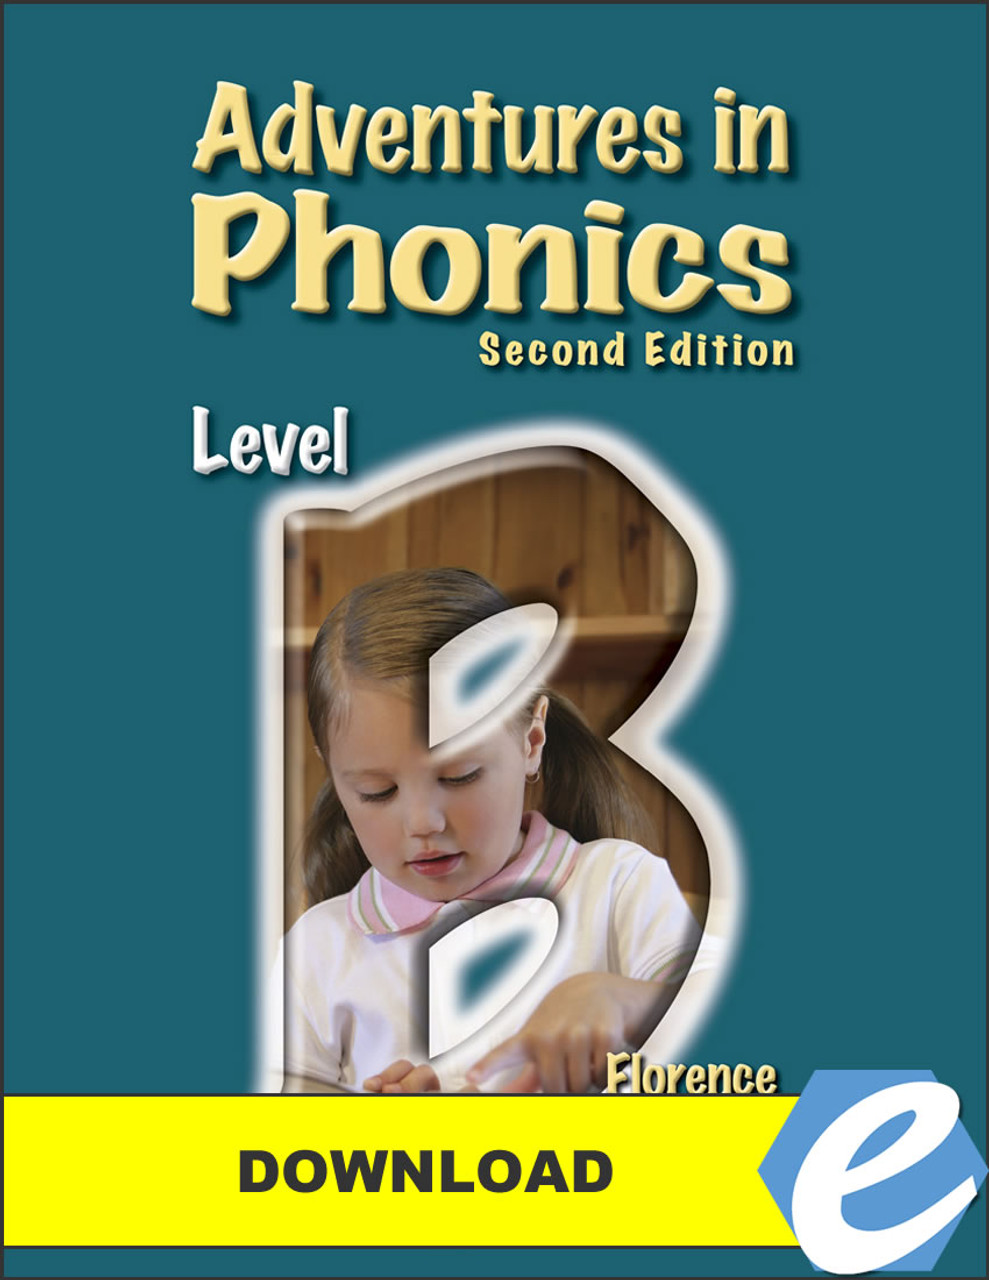 Adventures in Phonics: Level B, 2nd edition - PDF Download